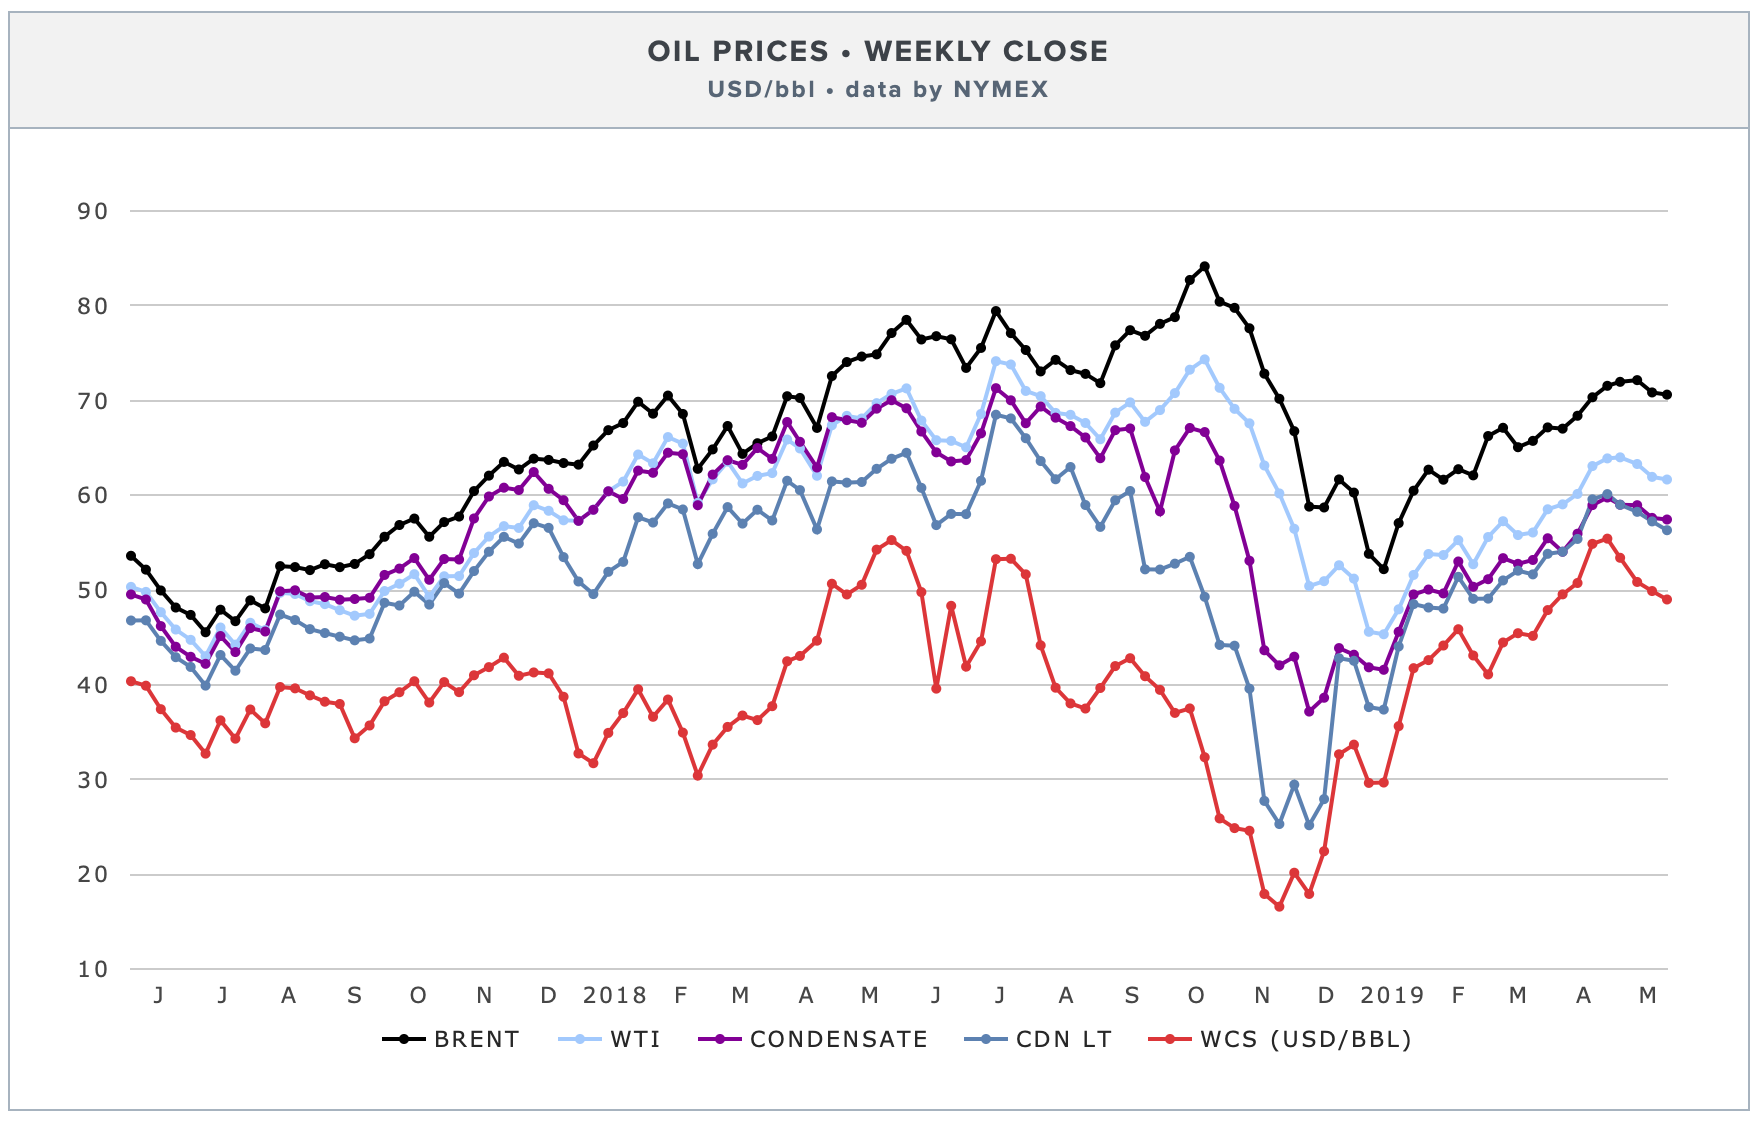 weekly-oil-prices-brent-wti.png